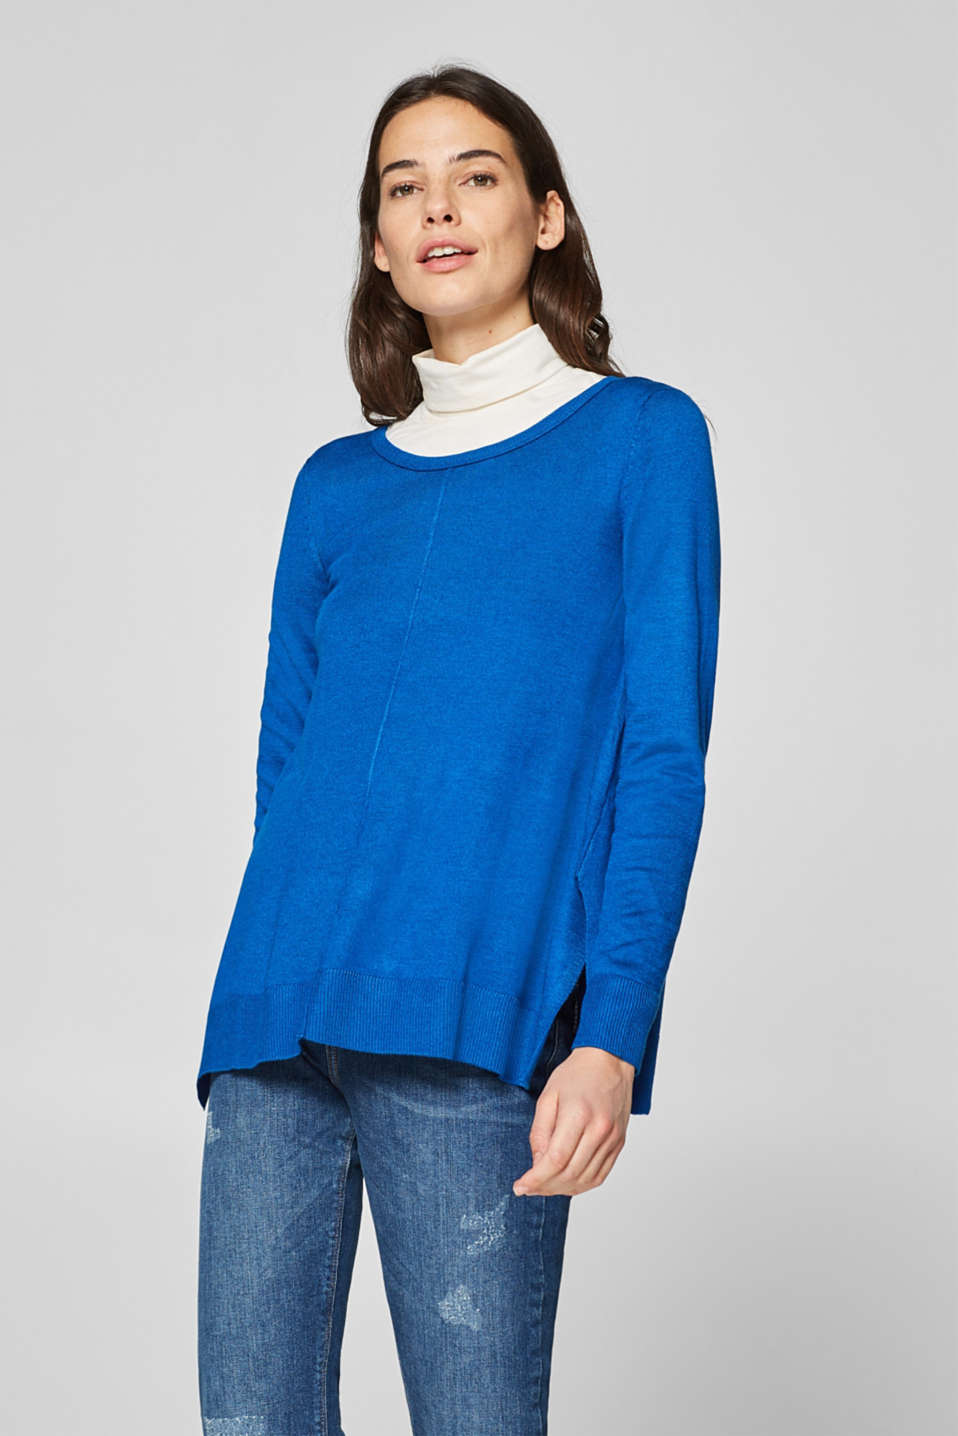 Esprit - Oversized, A-line sweater